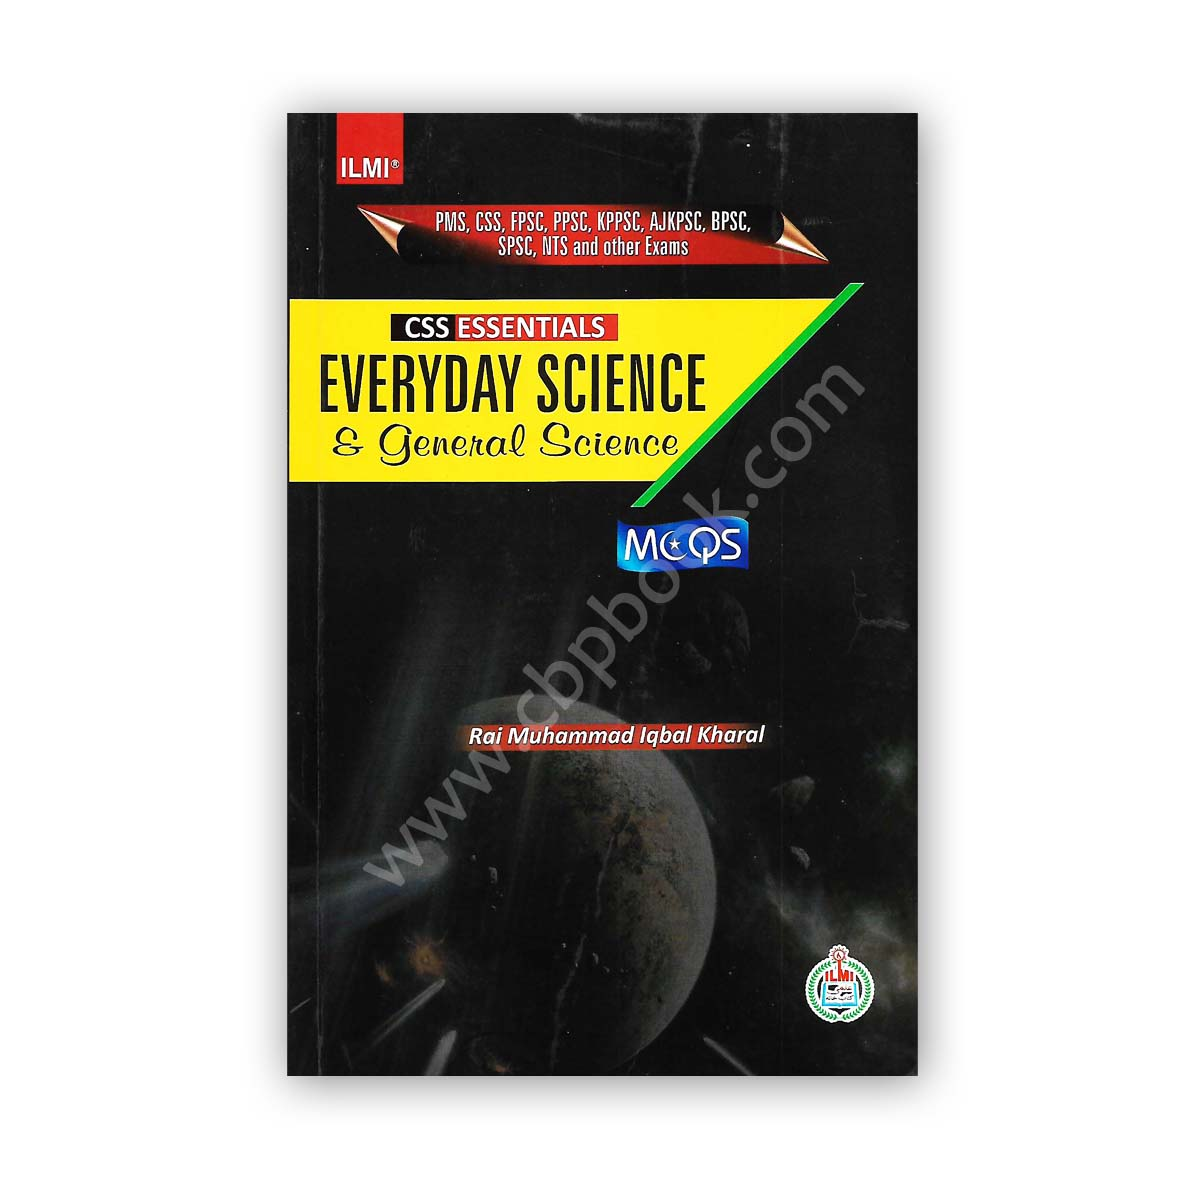 ilmi css essentials everyday science & general sceince by rai m iqbal kharal